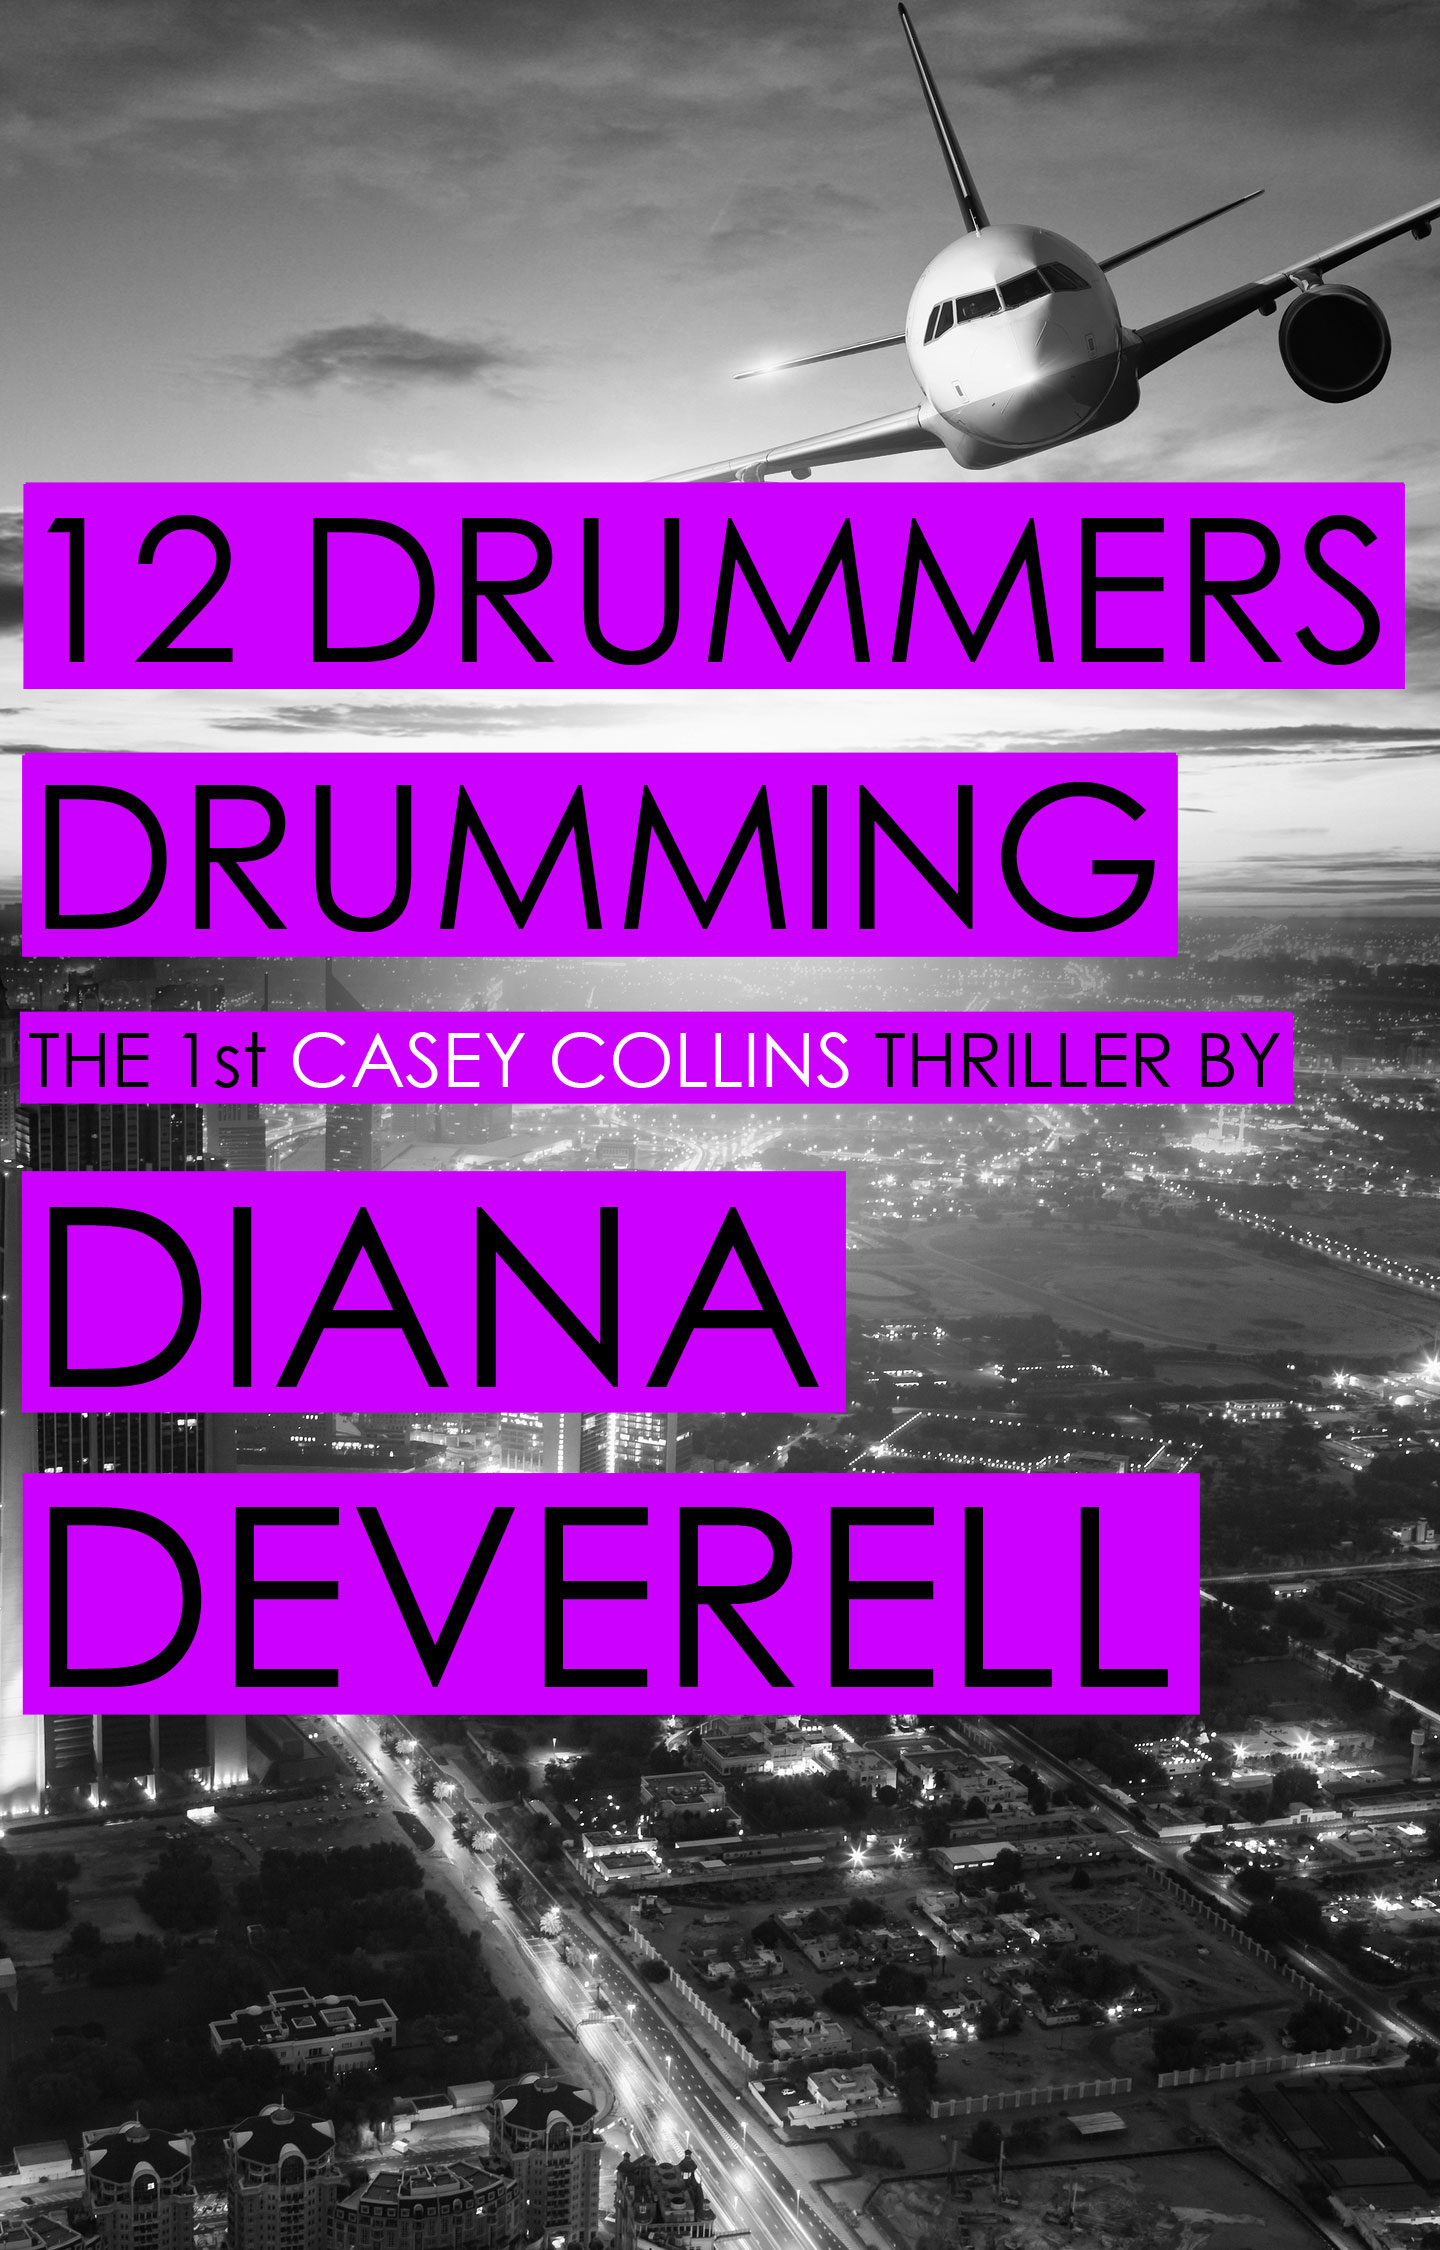 12 Drummers Drumming - A Casey Collins Counterterrorism Thriller by Diana Deverell Book Cover